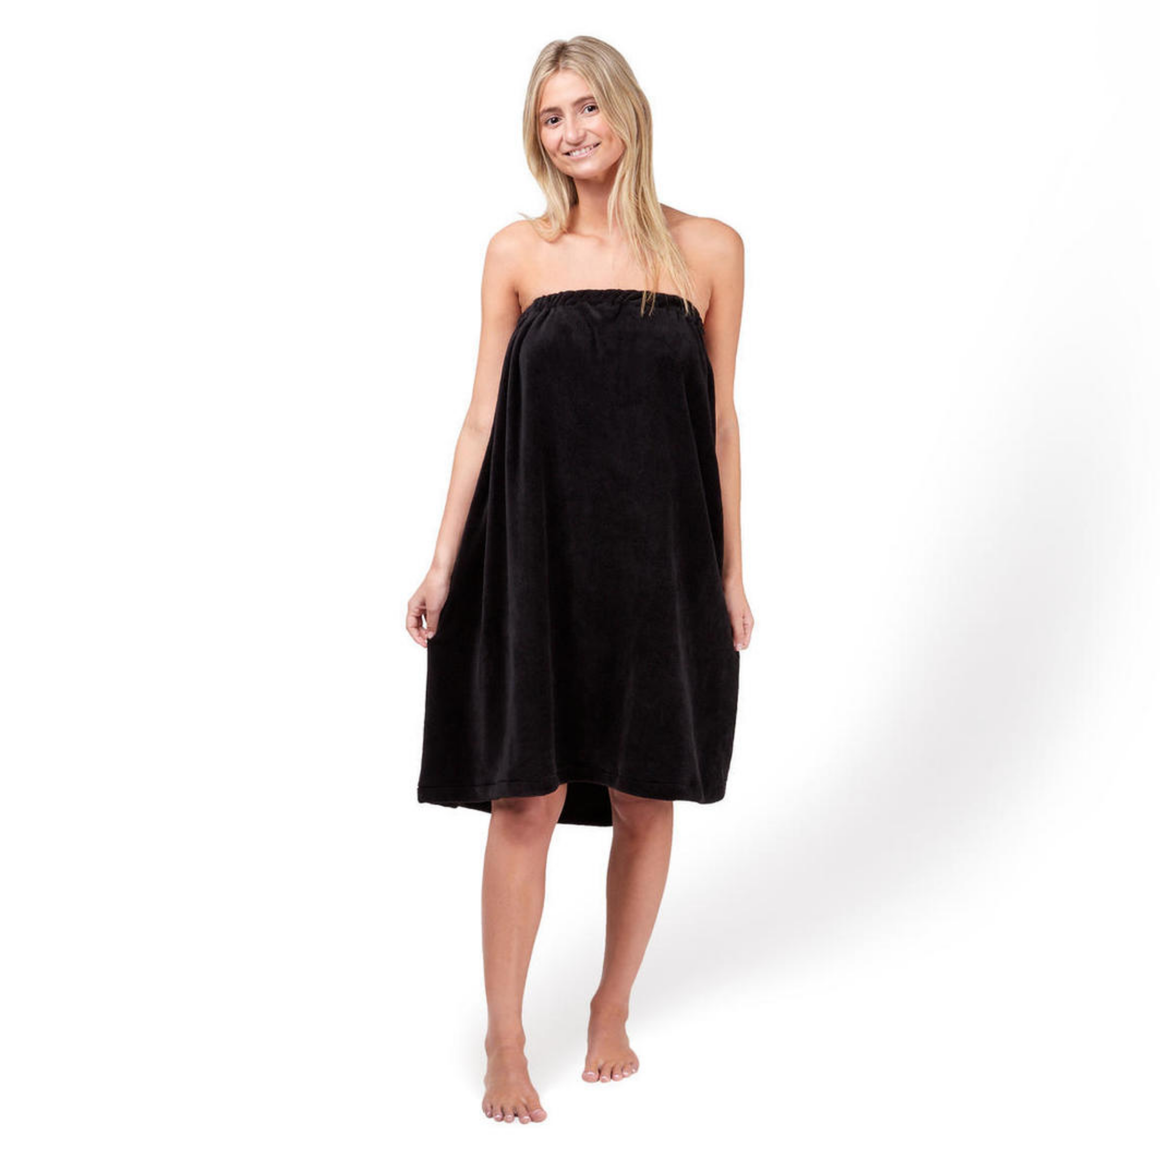 BODY WRAP BLACK MICROFIBRE - ONE SIZE